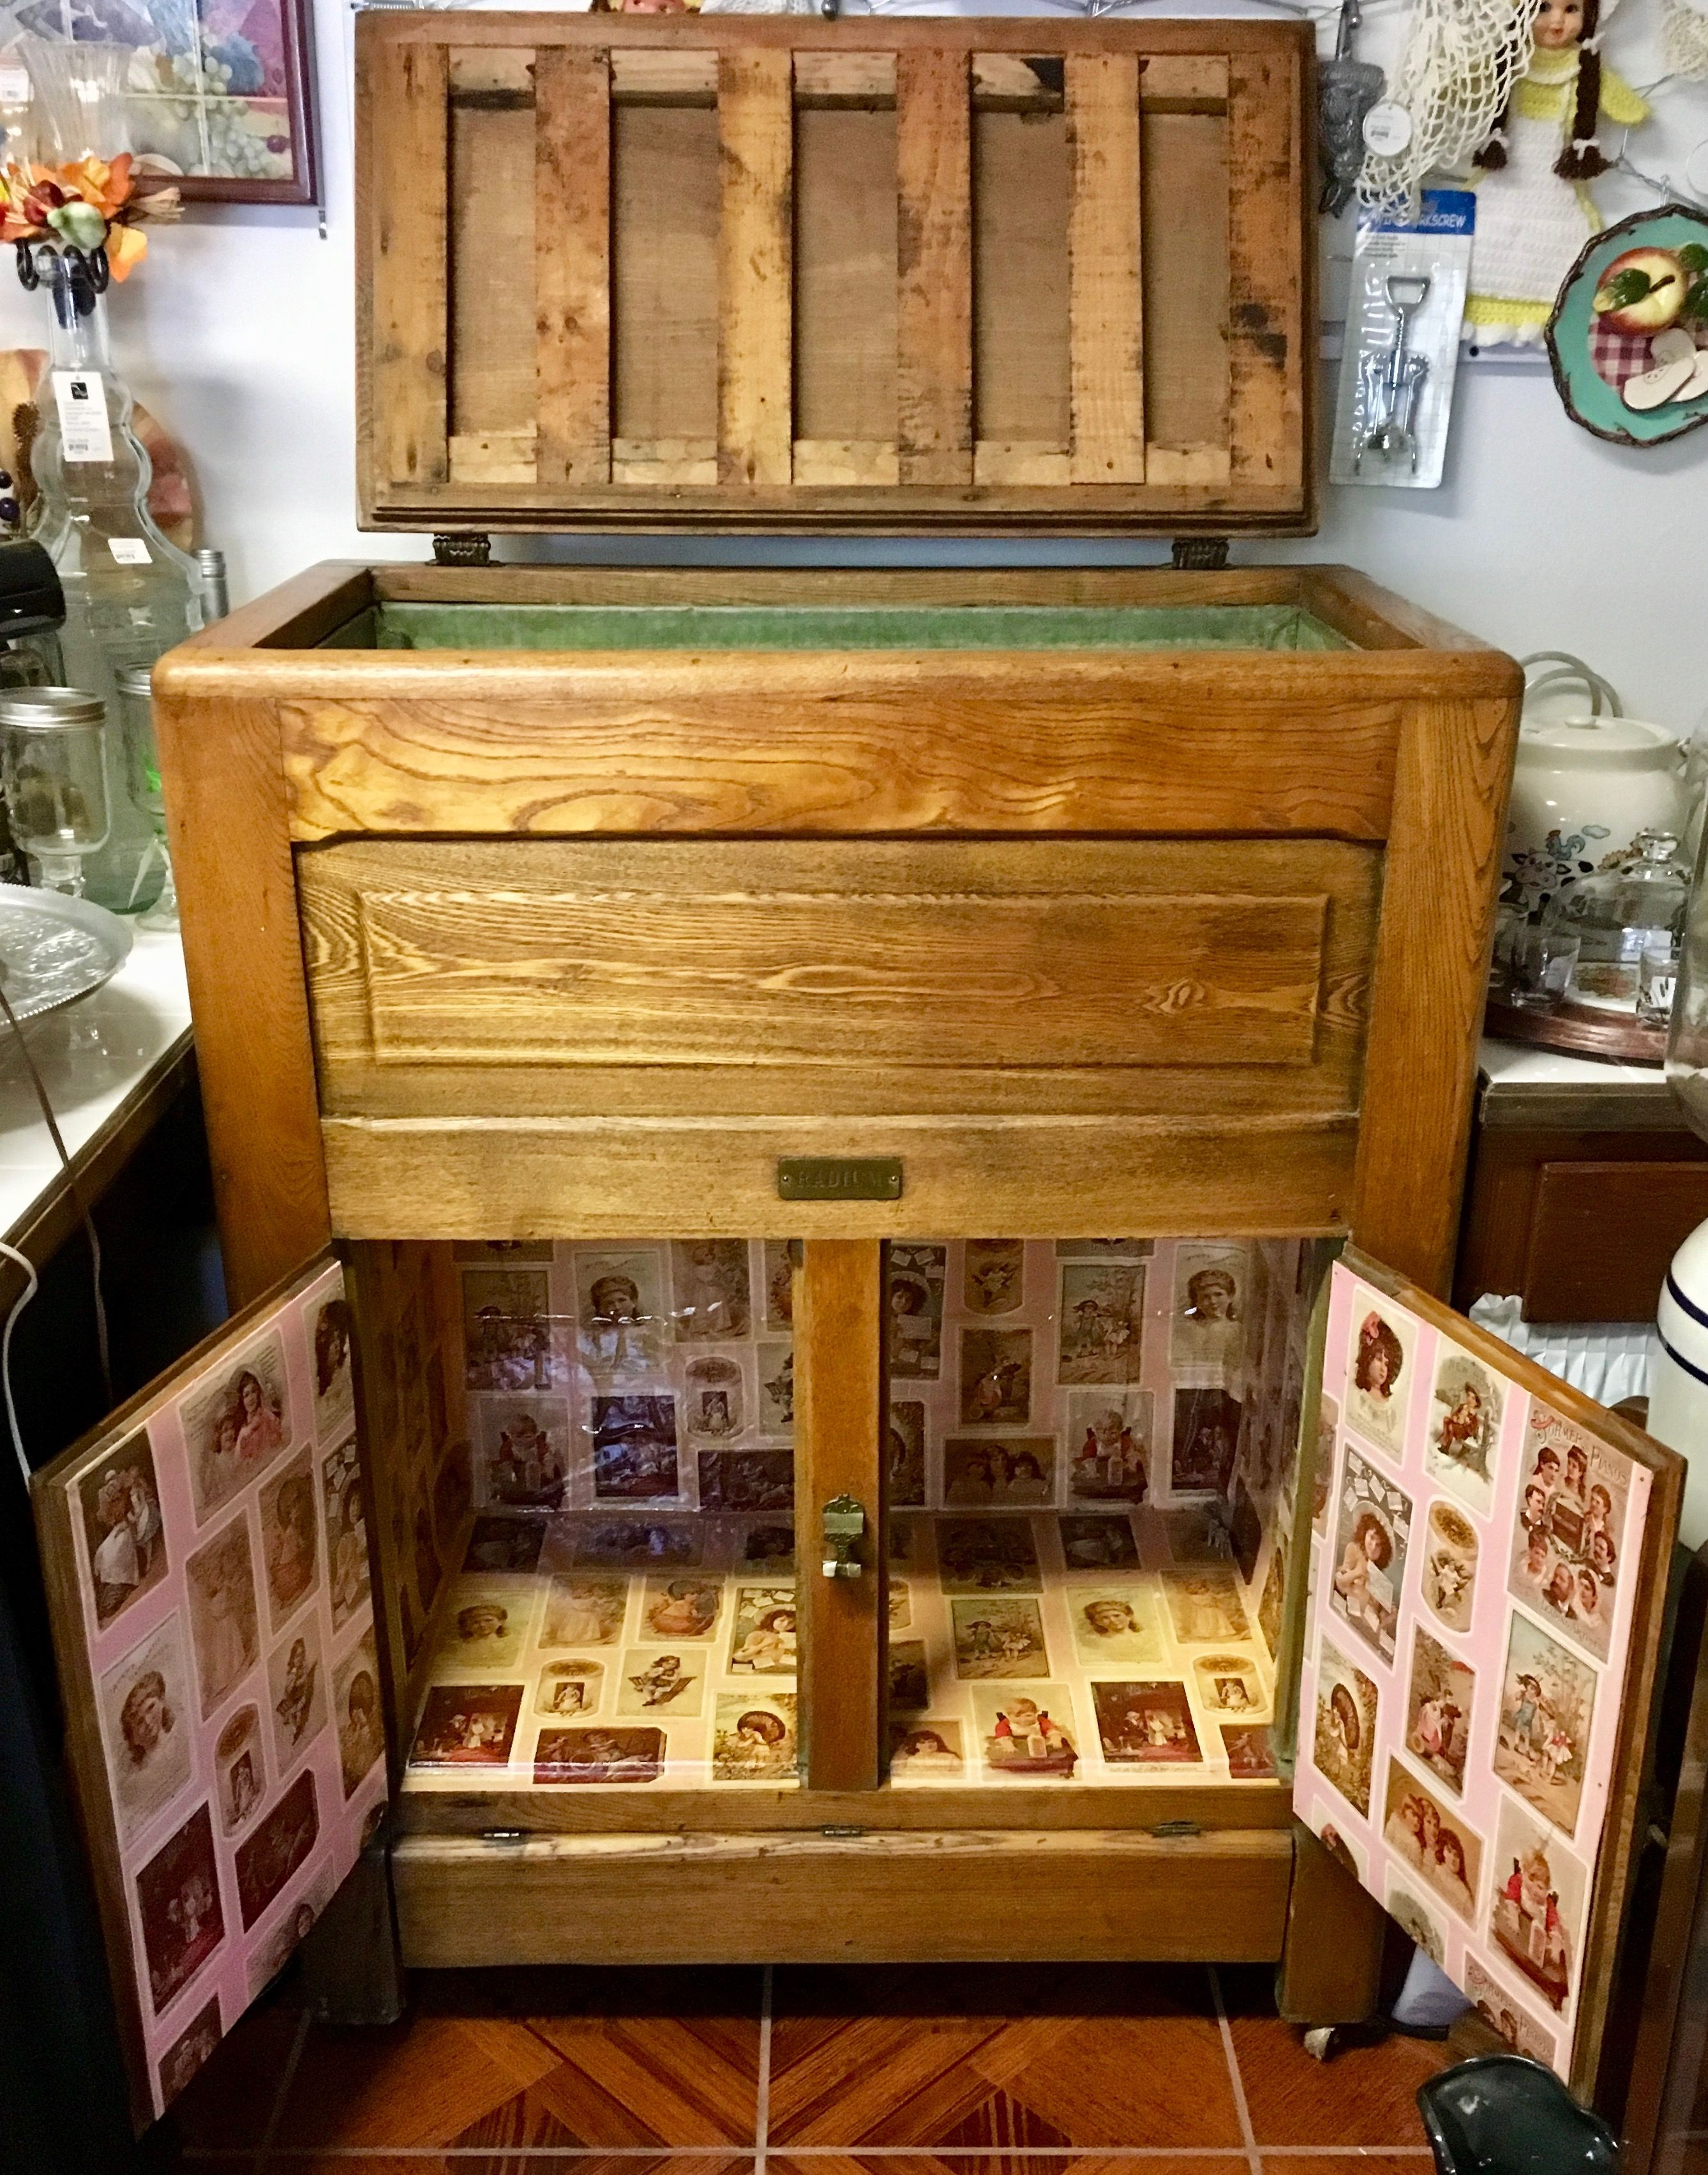 An Antique Wooden Ice Box Is A Great Collectible Item That Can Be Used As A Wine Or Liquor Cabinet Today The Ice Box Is Antiques Ponchatoula Antique Furniture